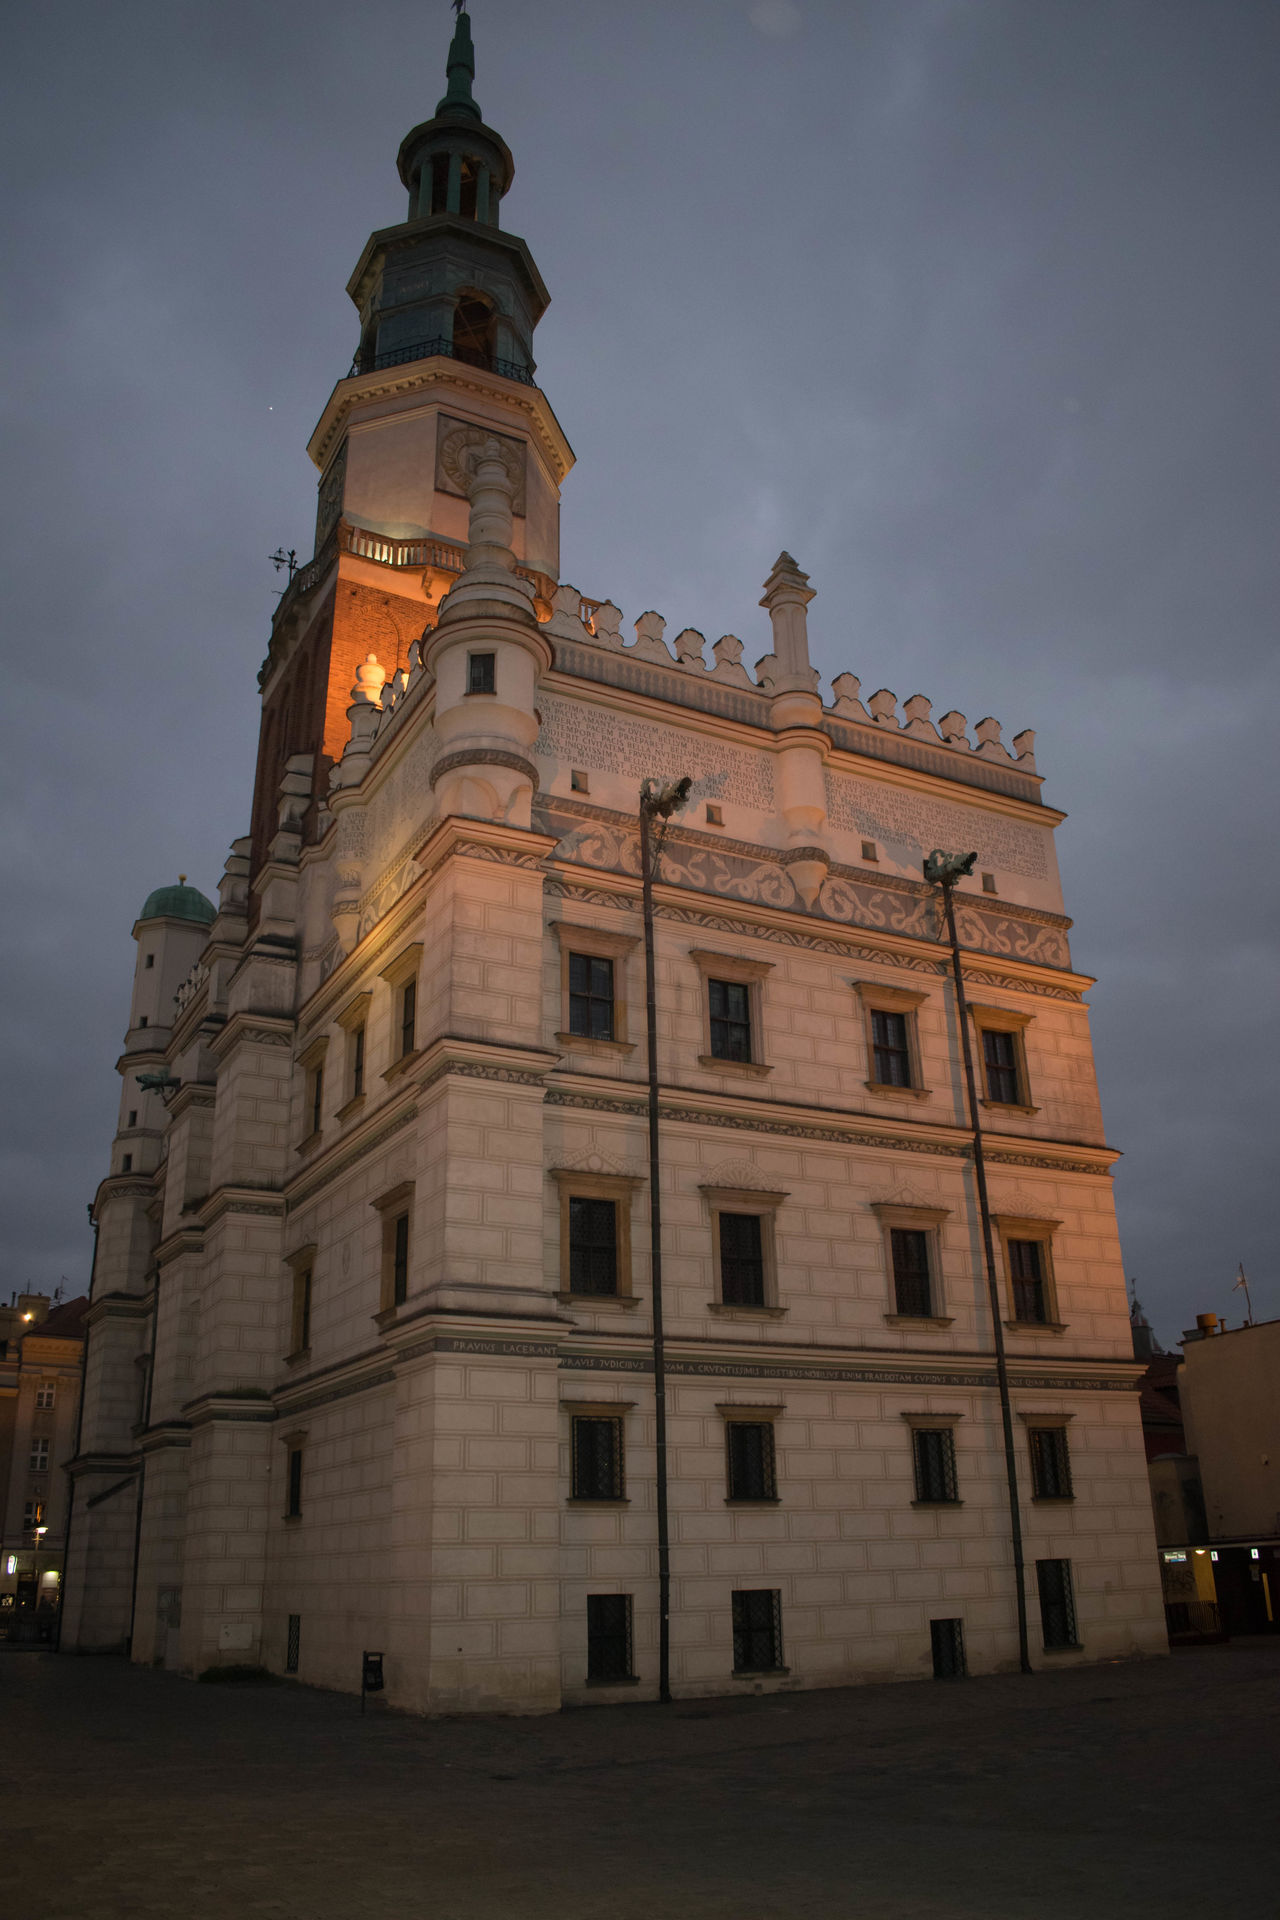 Architecture Architecture Building Exterior Buildings Built Structure Business Finance And Industry Church Churches City Clock Façade Historical Building History Illuminated Landmark Night No People Outdoors Poland Poland Is Beautiful Sky Tower Travel Travel Destinations Windows